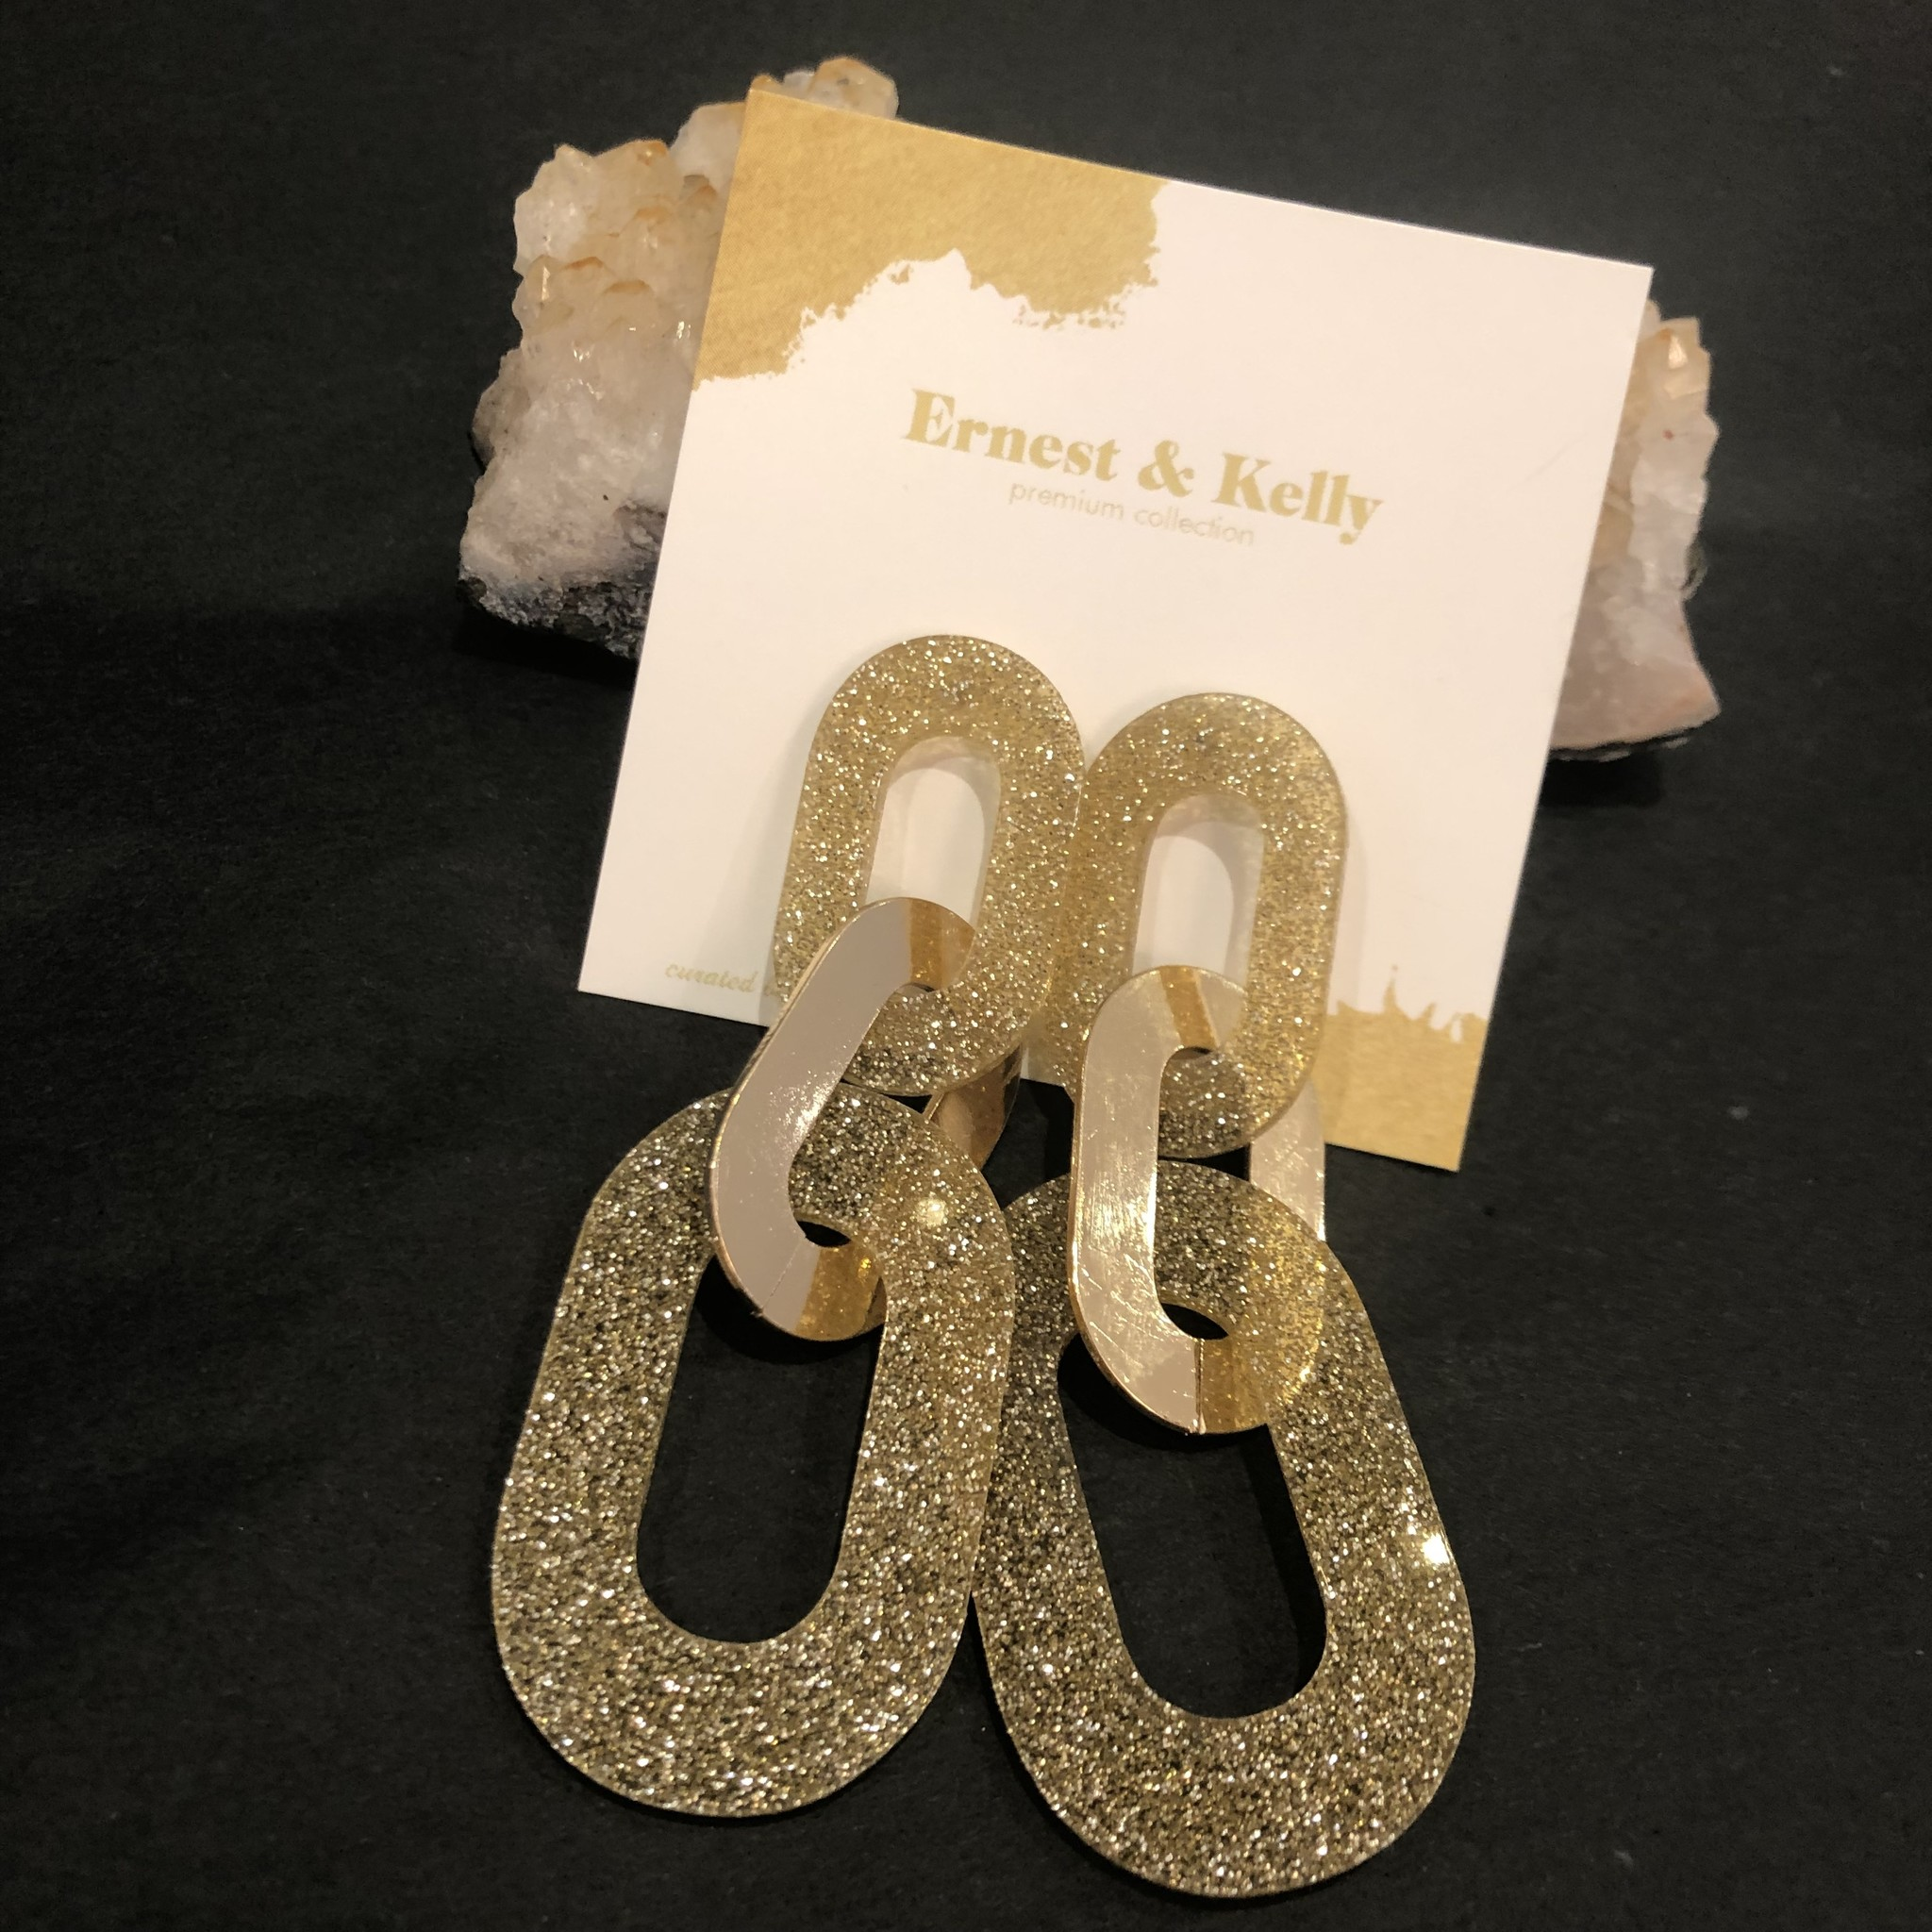 Ernest & Kelly Sasha Glitter Earrings